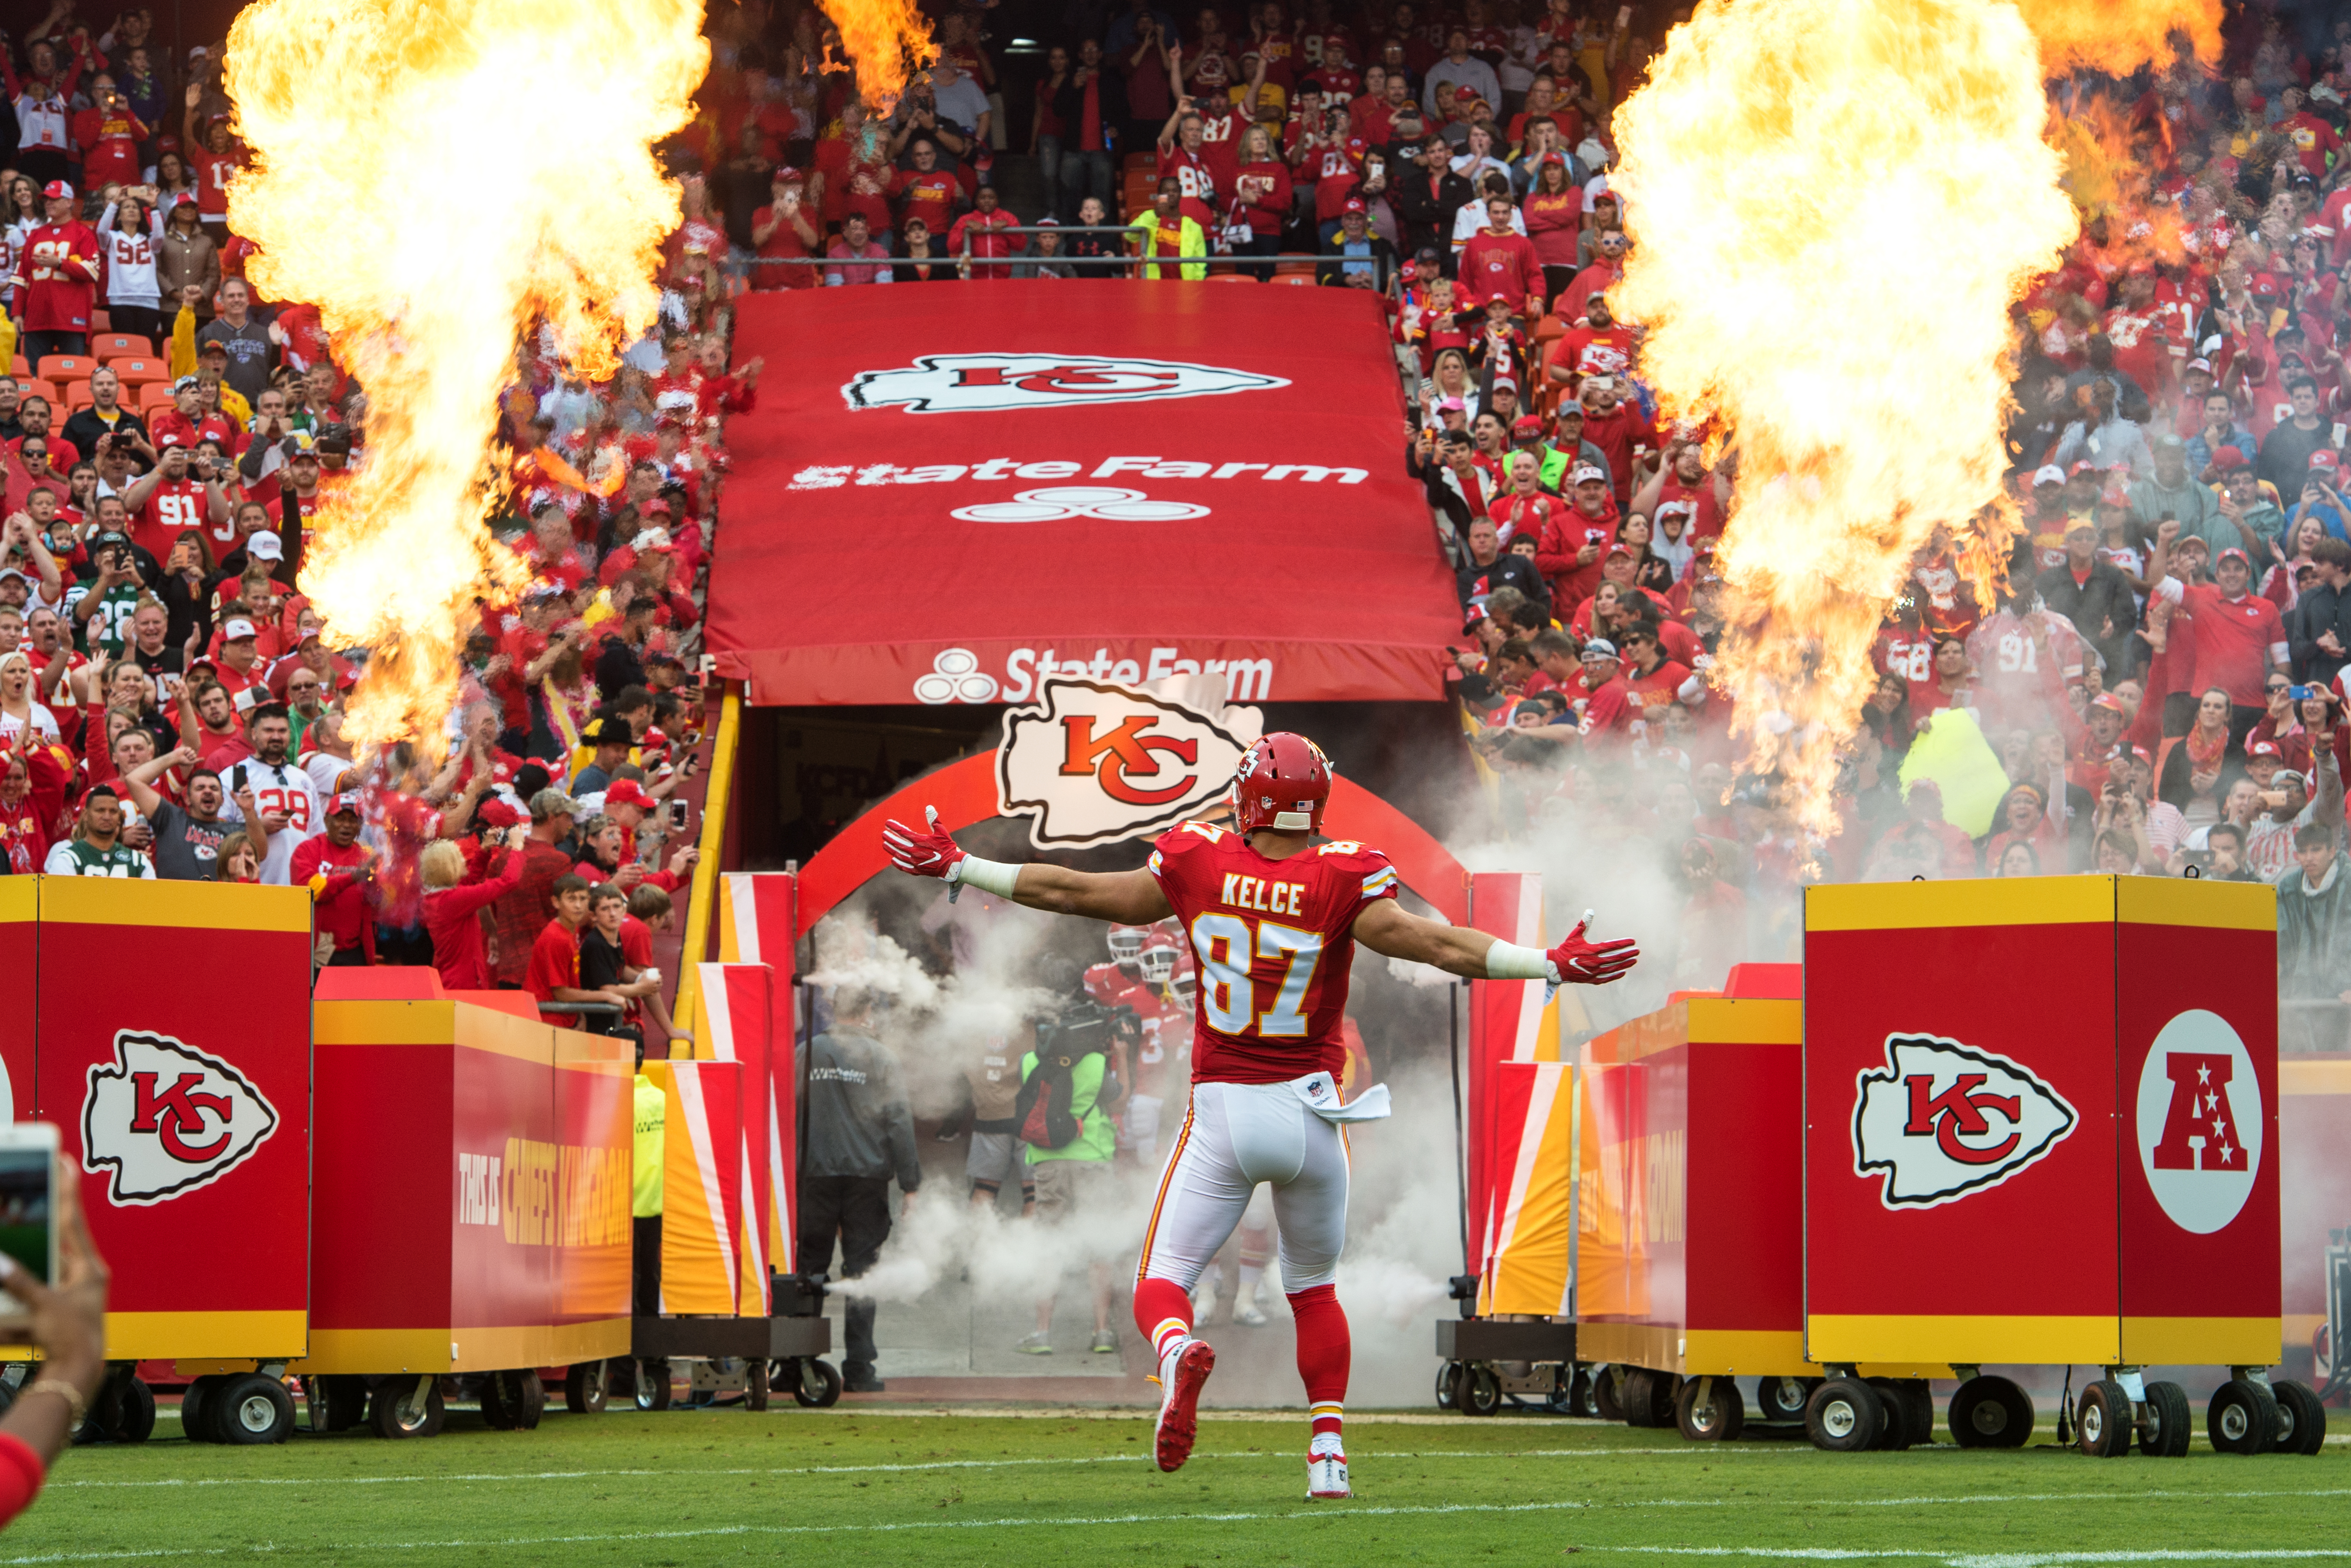 The Kansas City Chiefs and their fans can make life miserable for opponents visiting Arrowhead Stadium.